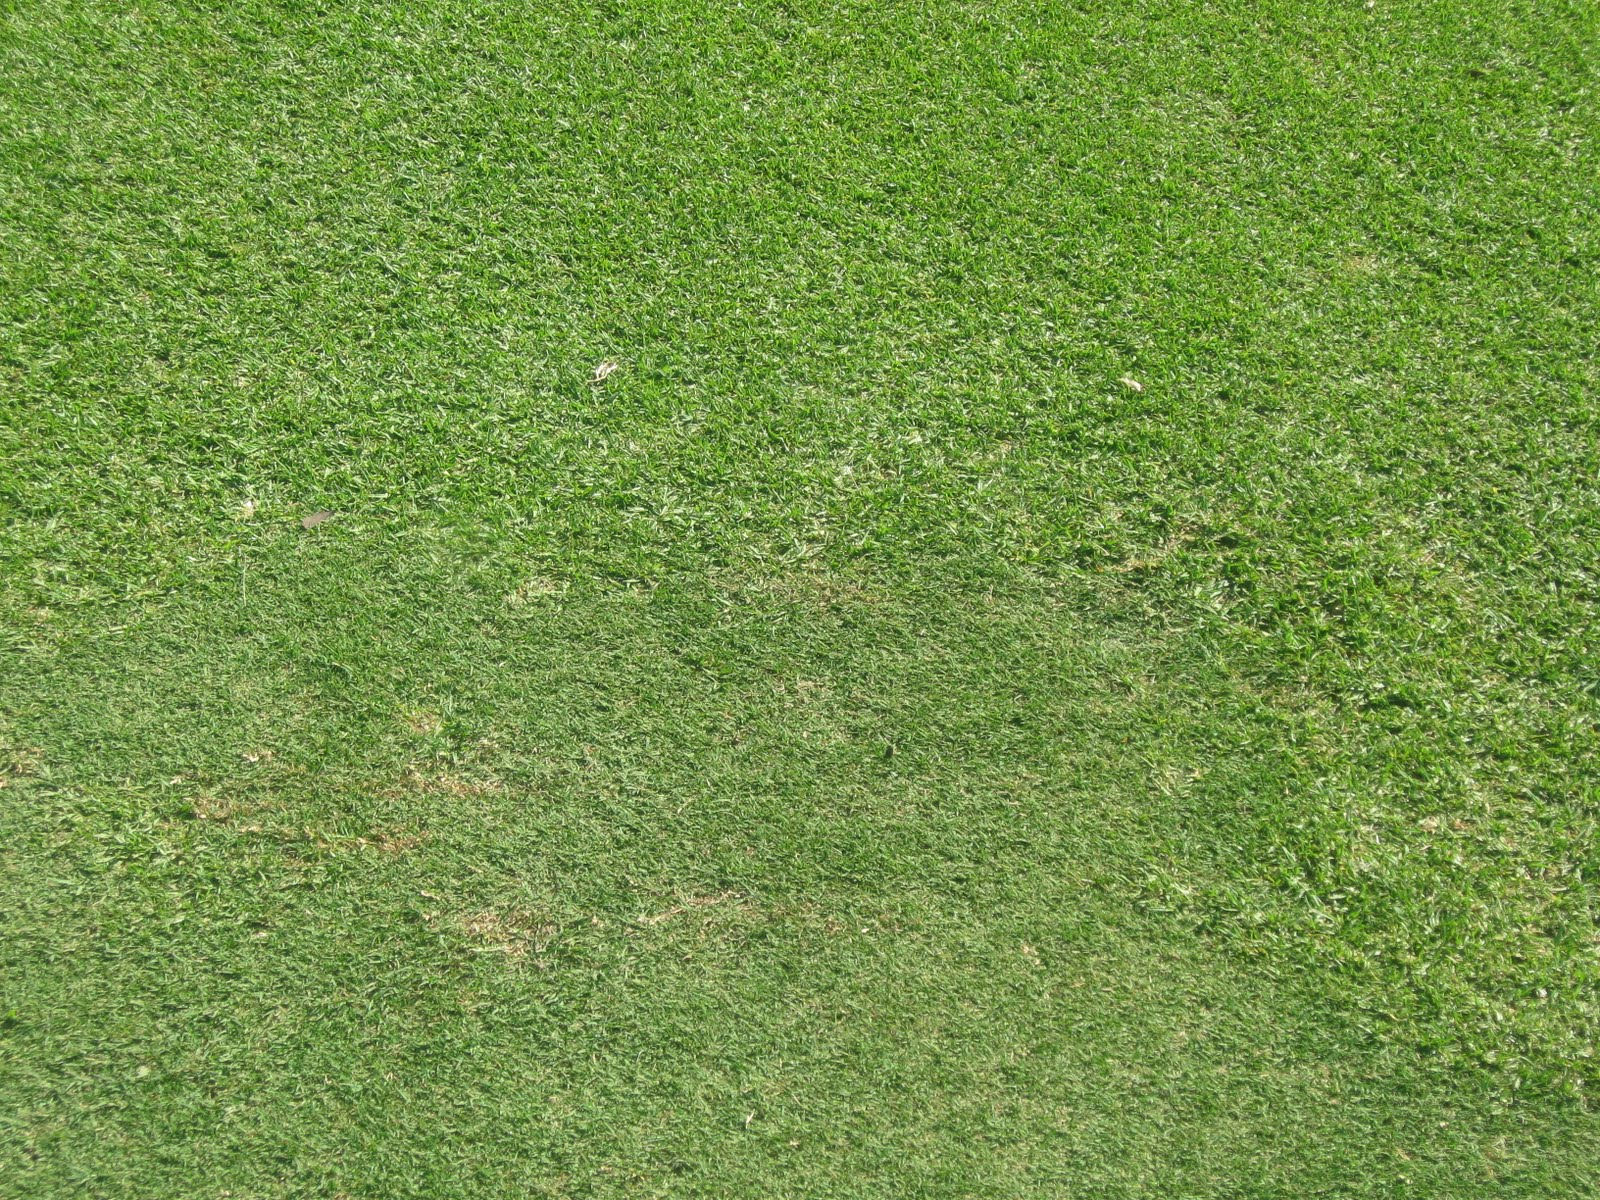 Northbridge Golf Club Course Maintenance: Turfing patches ...